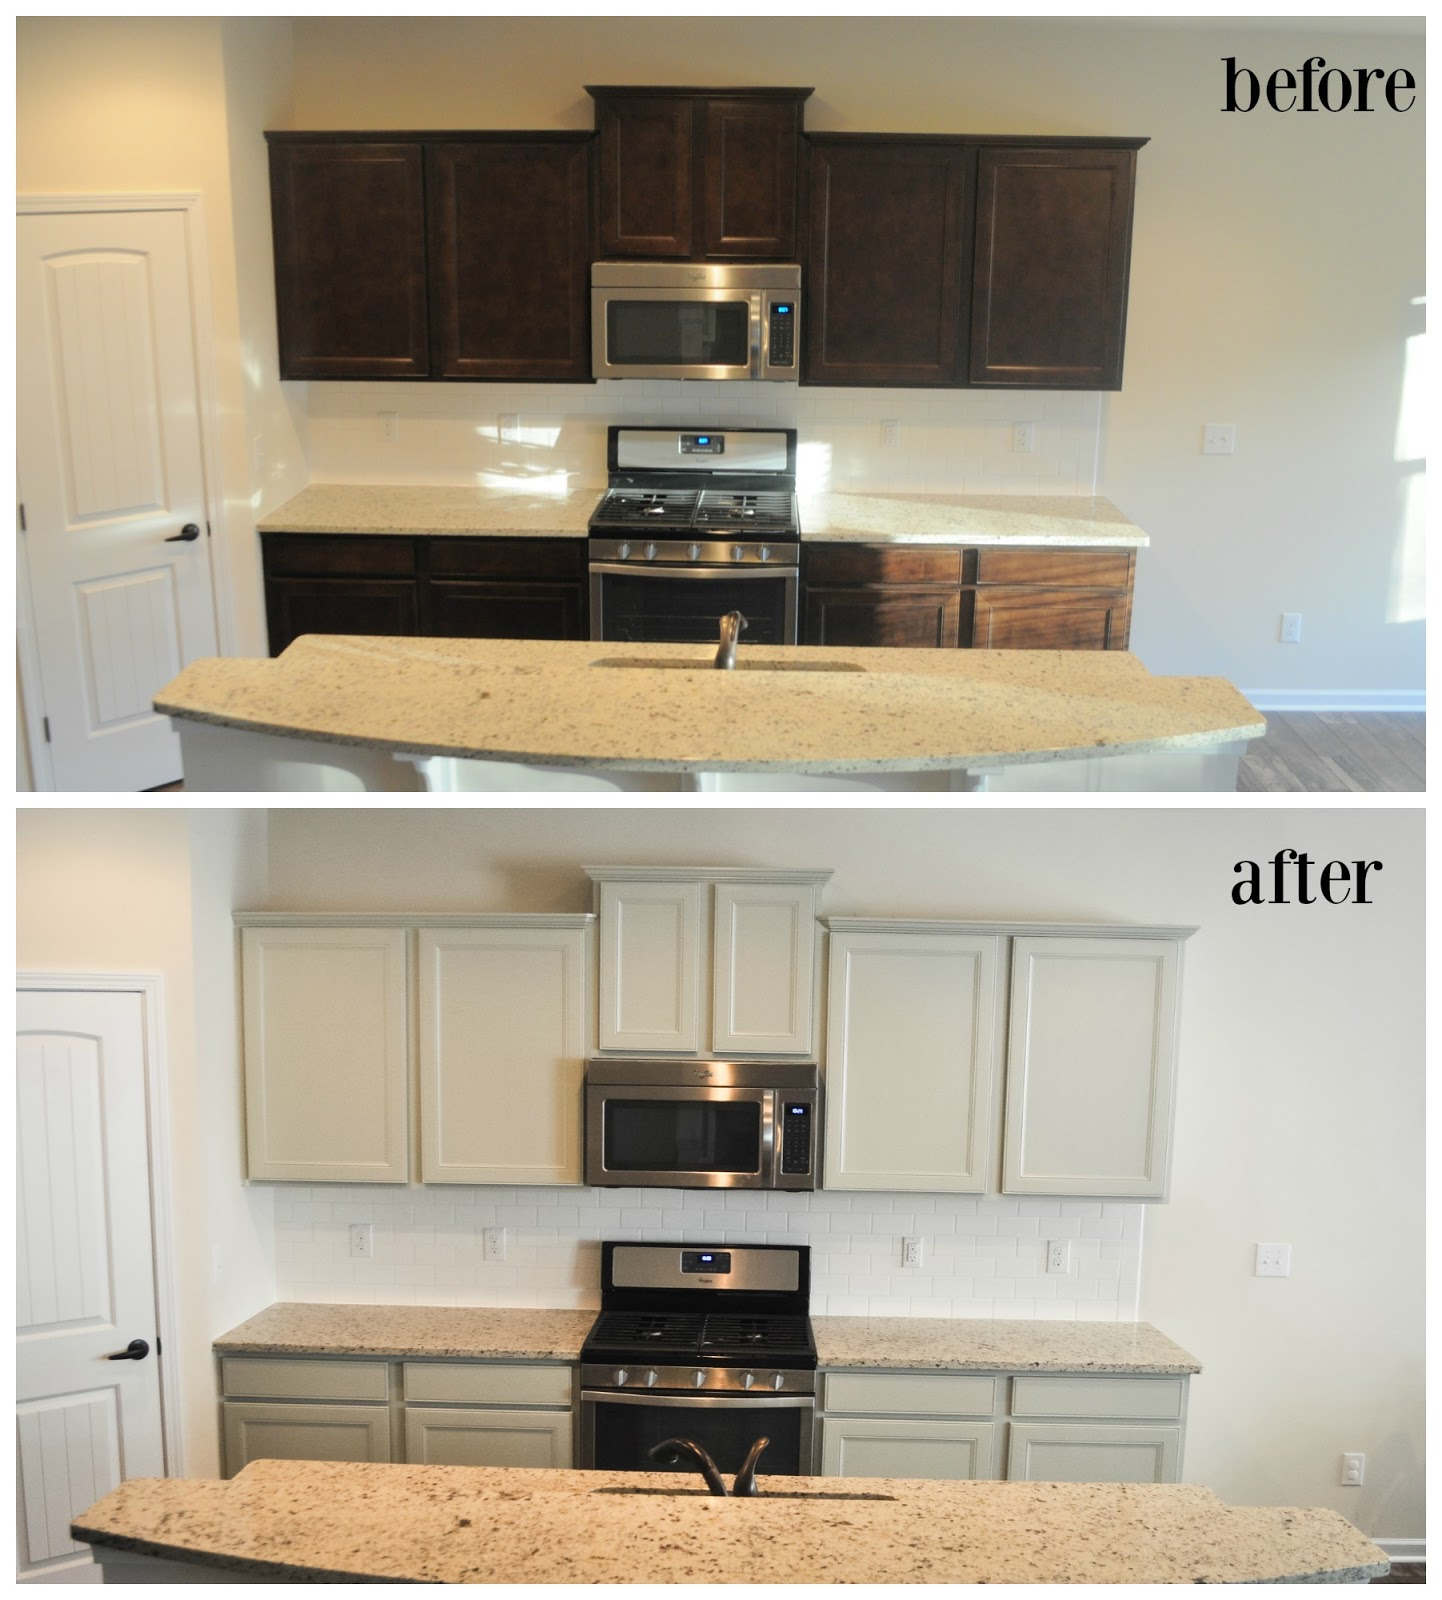 We Painted Our Brand New Kitchen Cabinets and Heres How